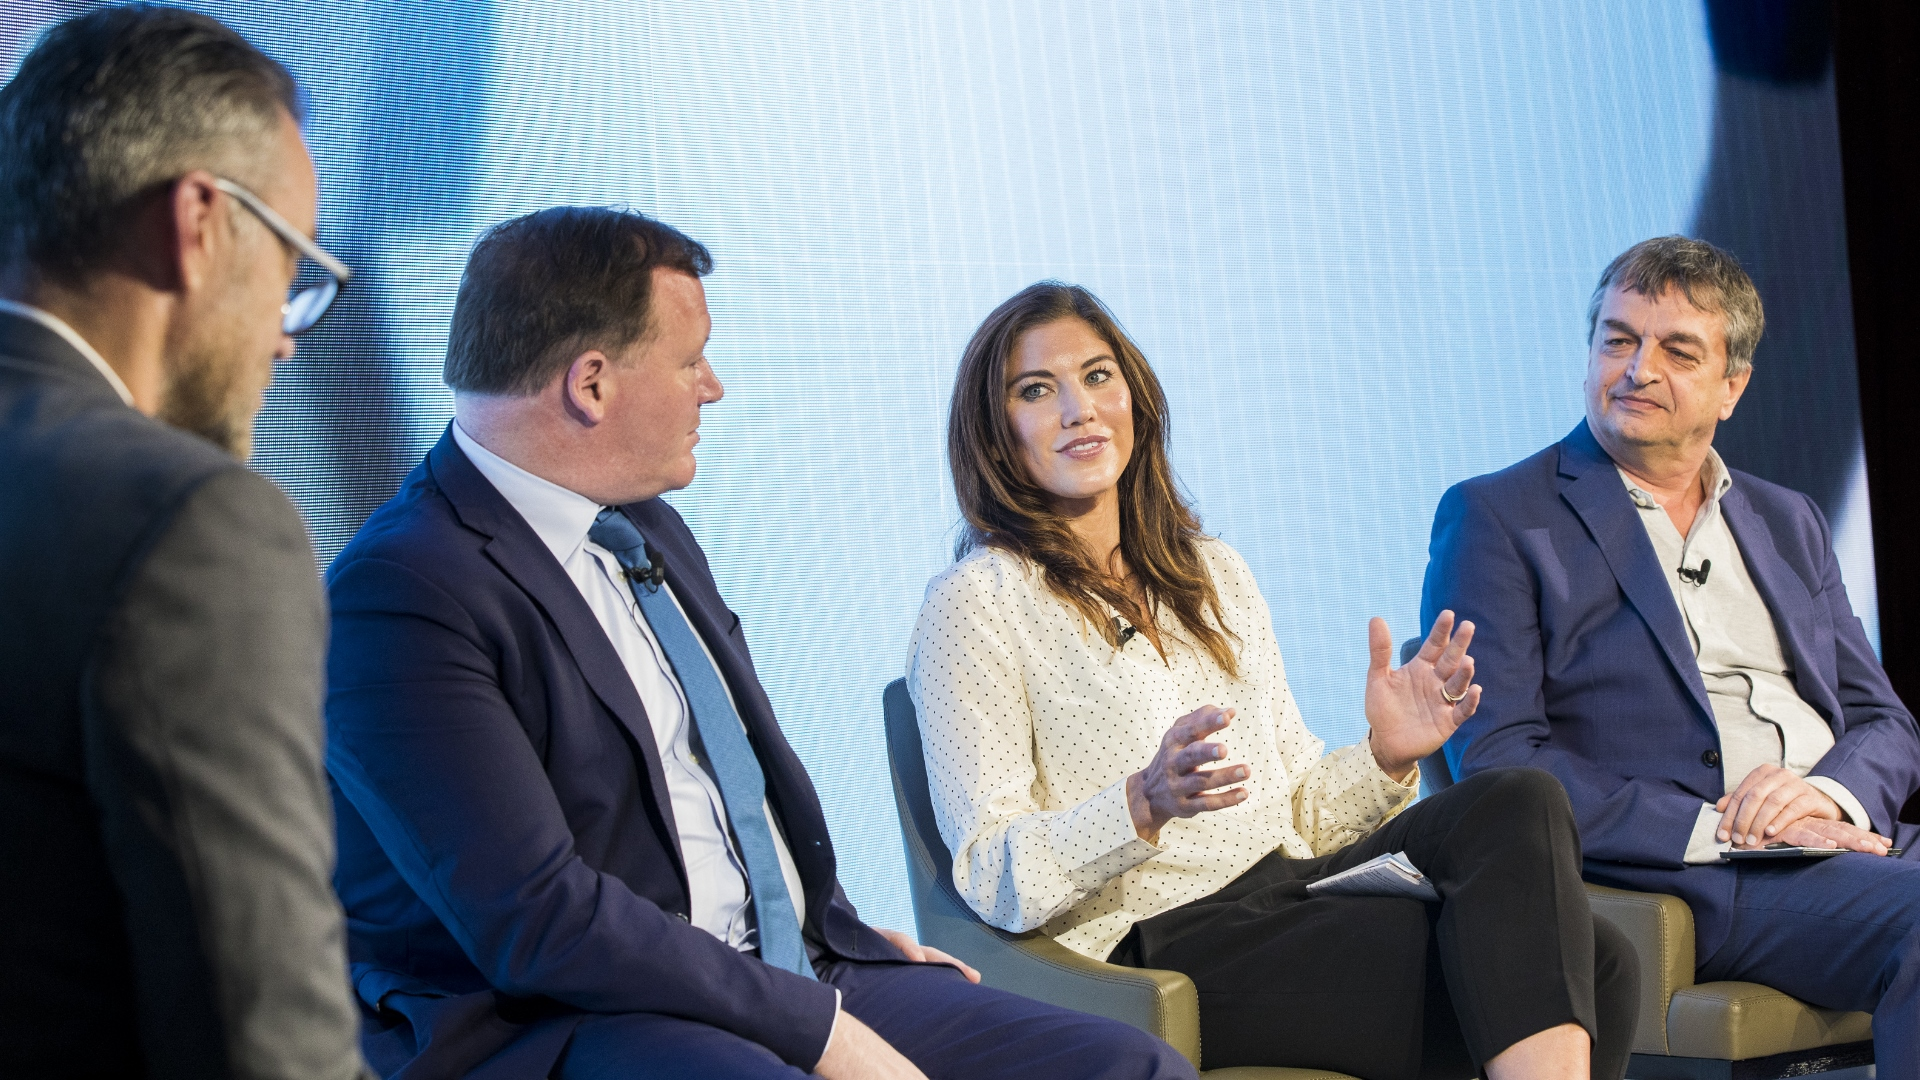 Simon Hill, Damian Collins, Hope Solo and Jerome Champagne